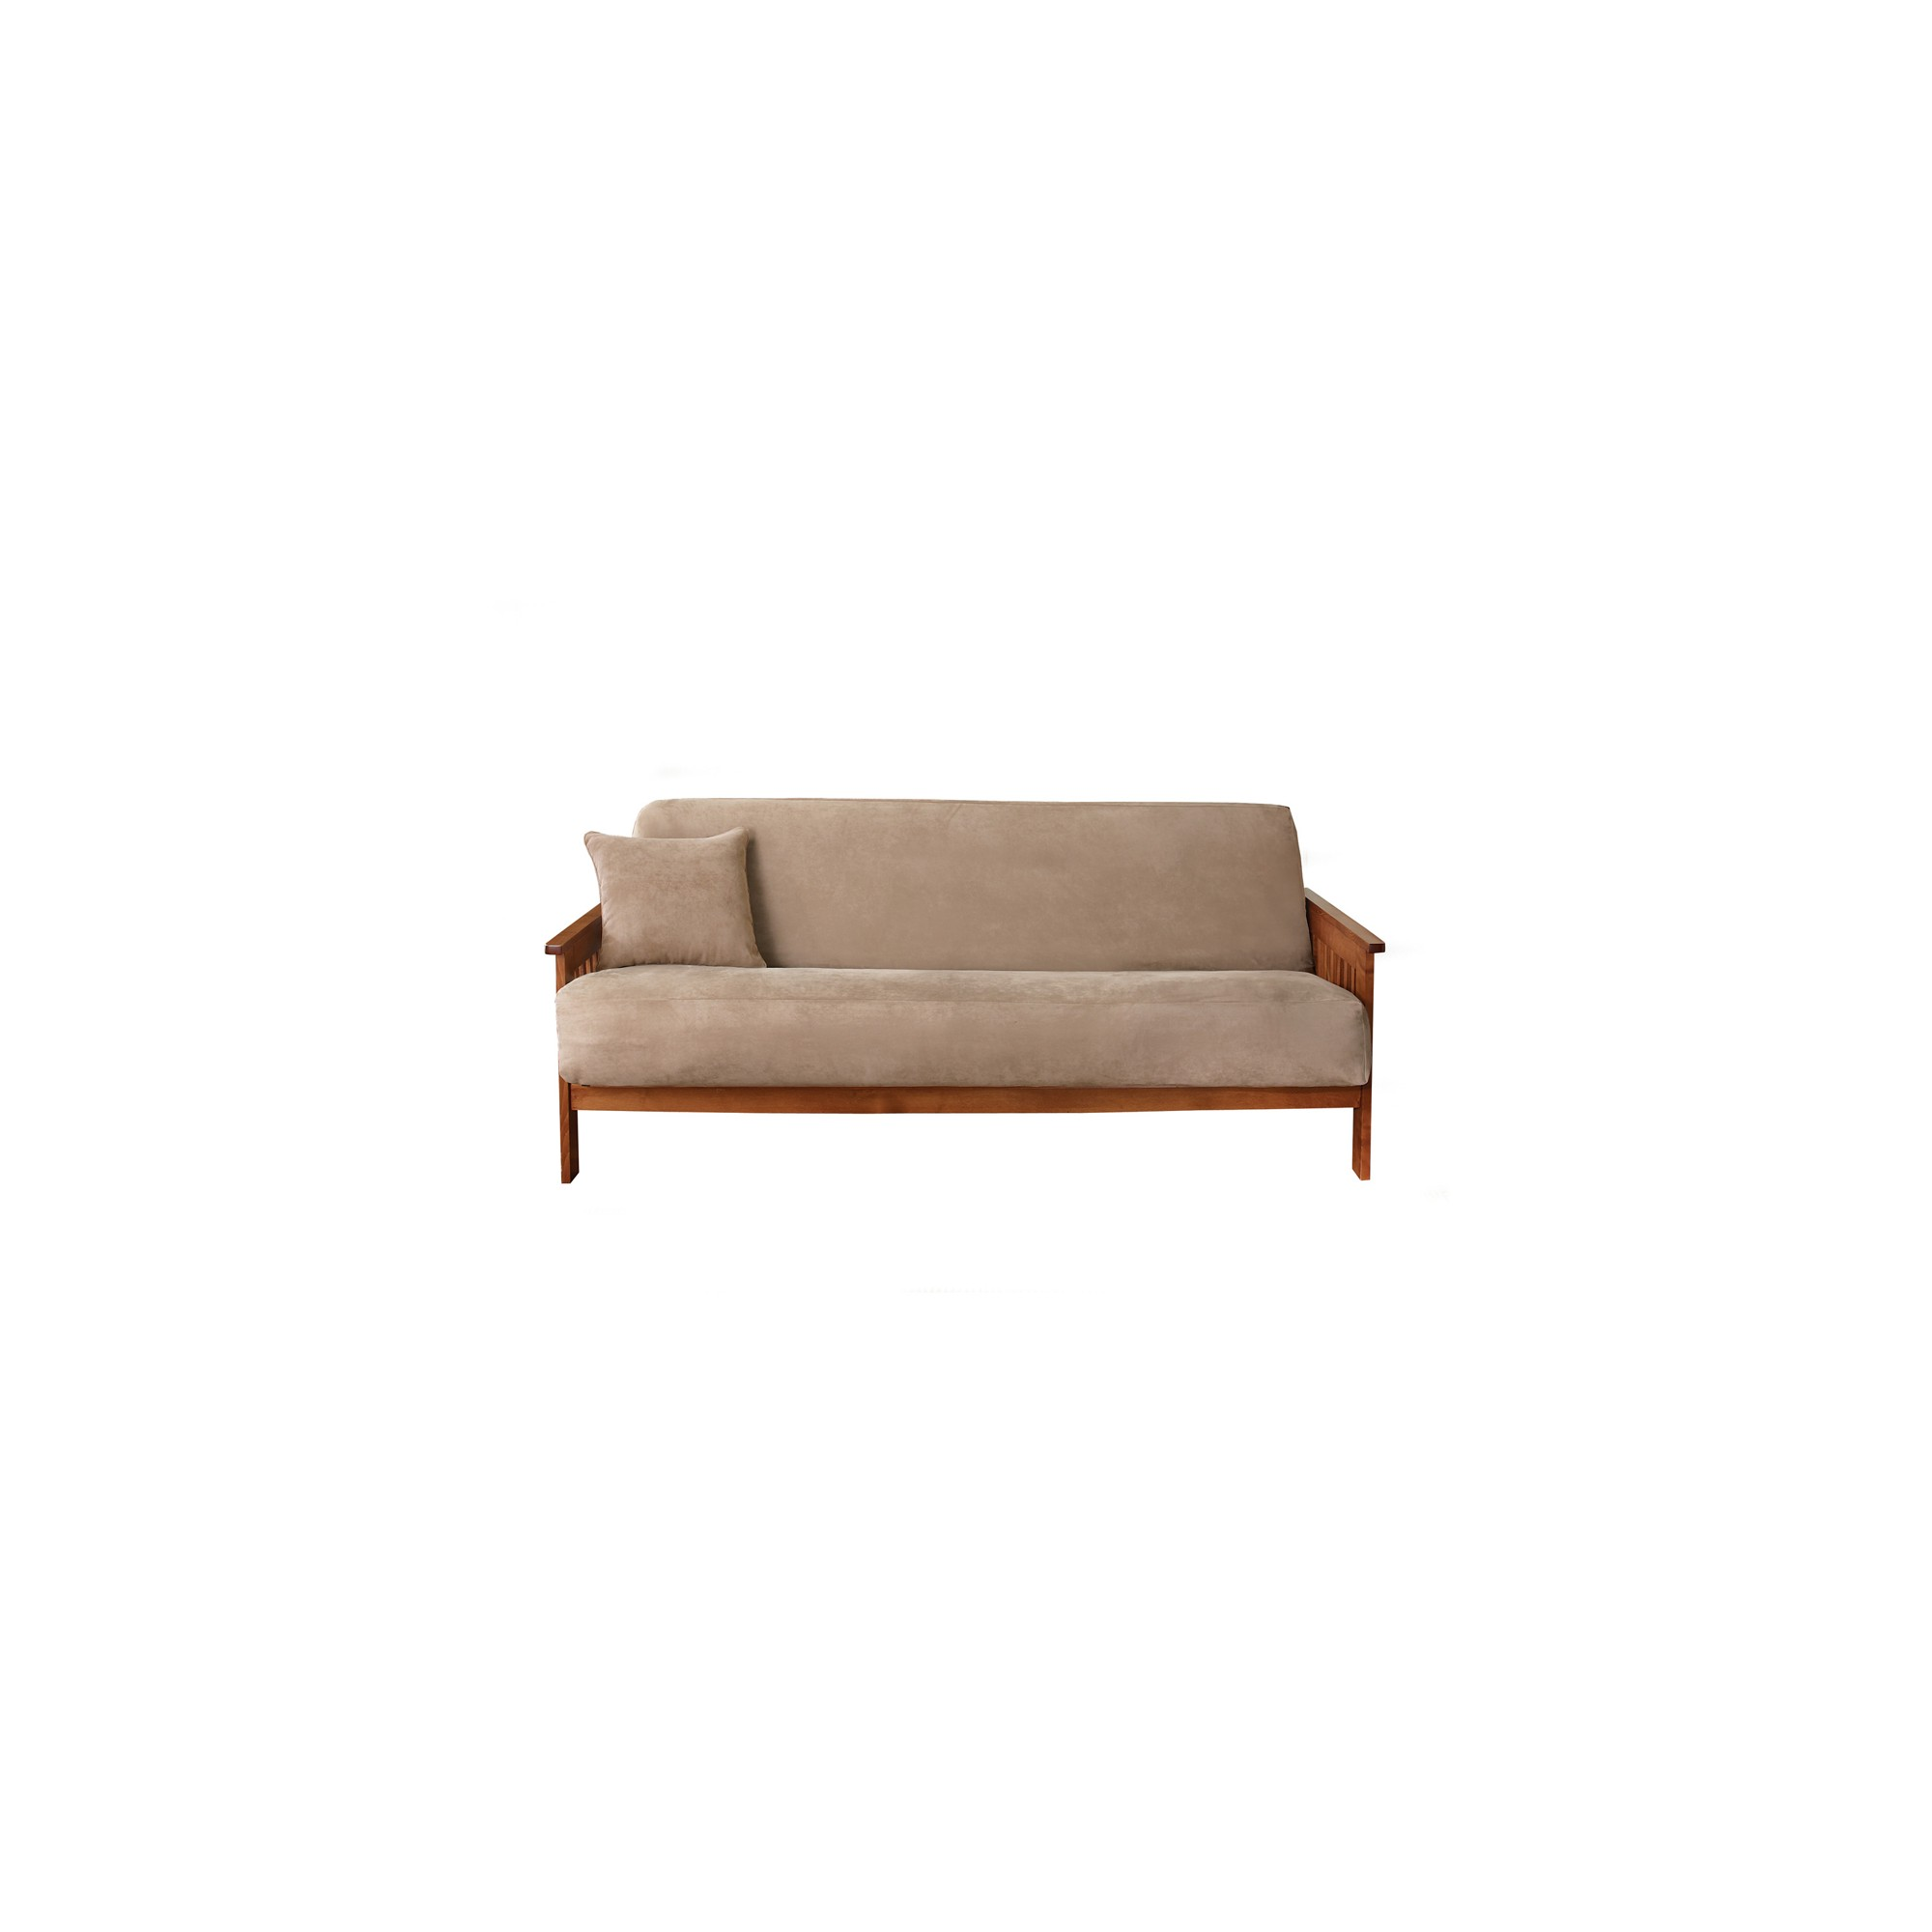 Soft Suede Futon Cover Taupe - Sure Fit, Brown